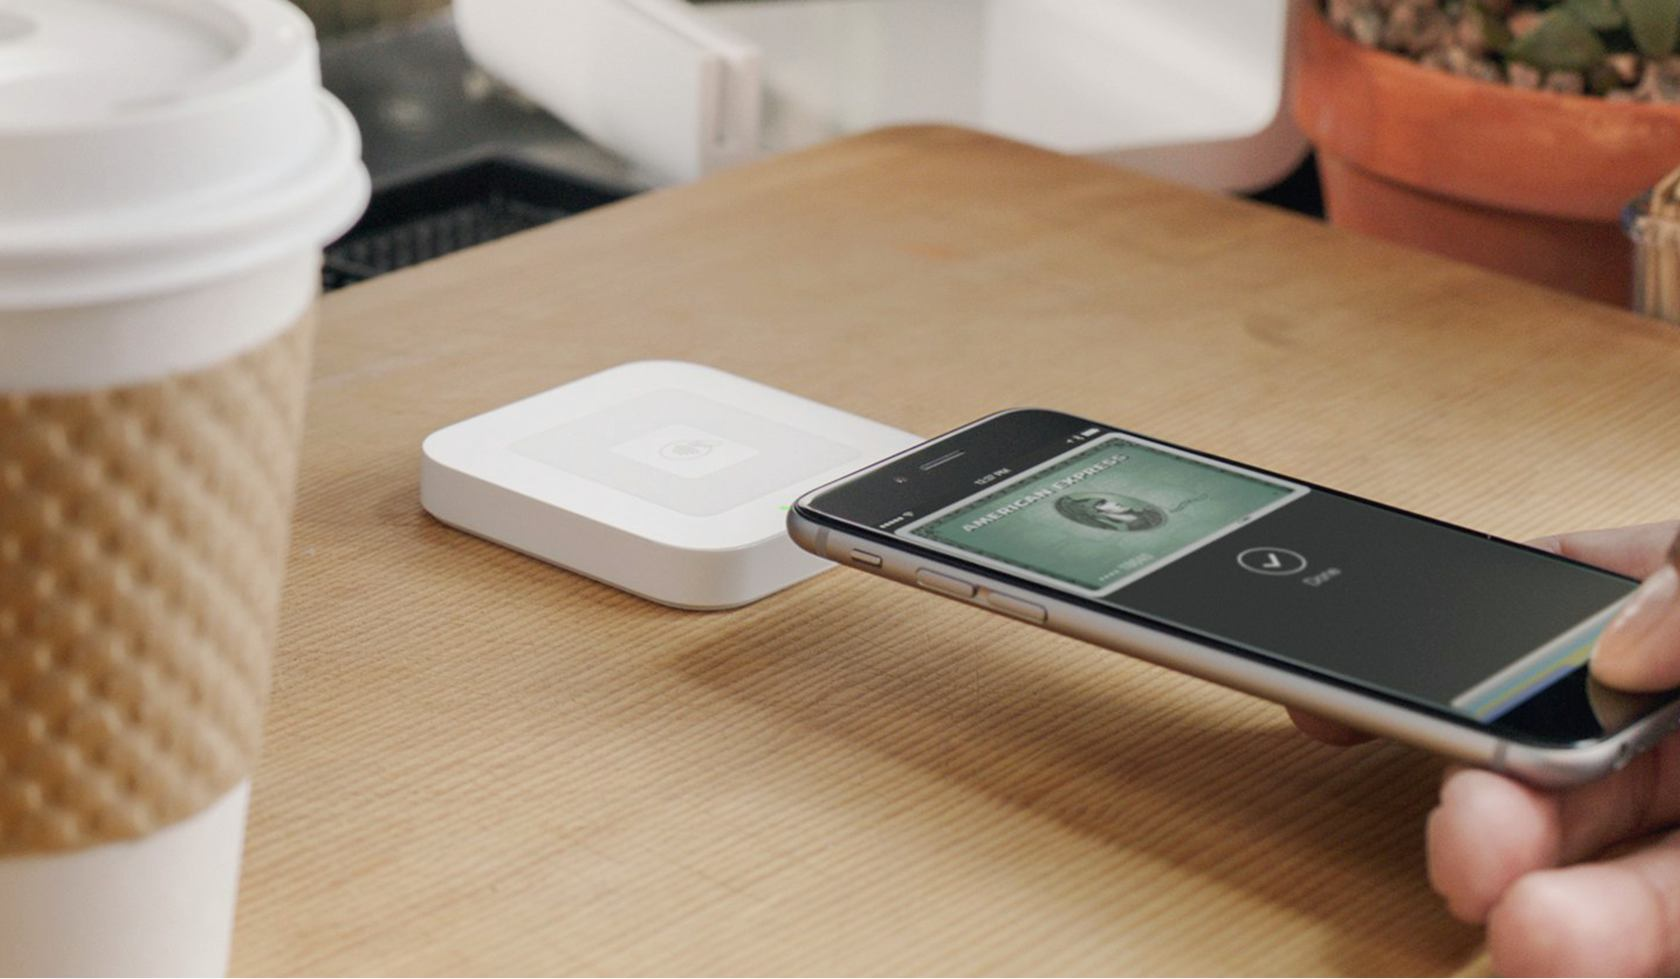 Photo of a phone making an Apple Pay payment near a Square Reader on a countertop